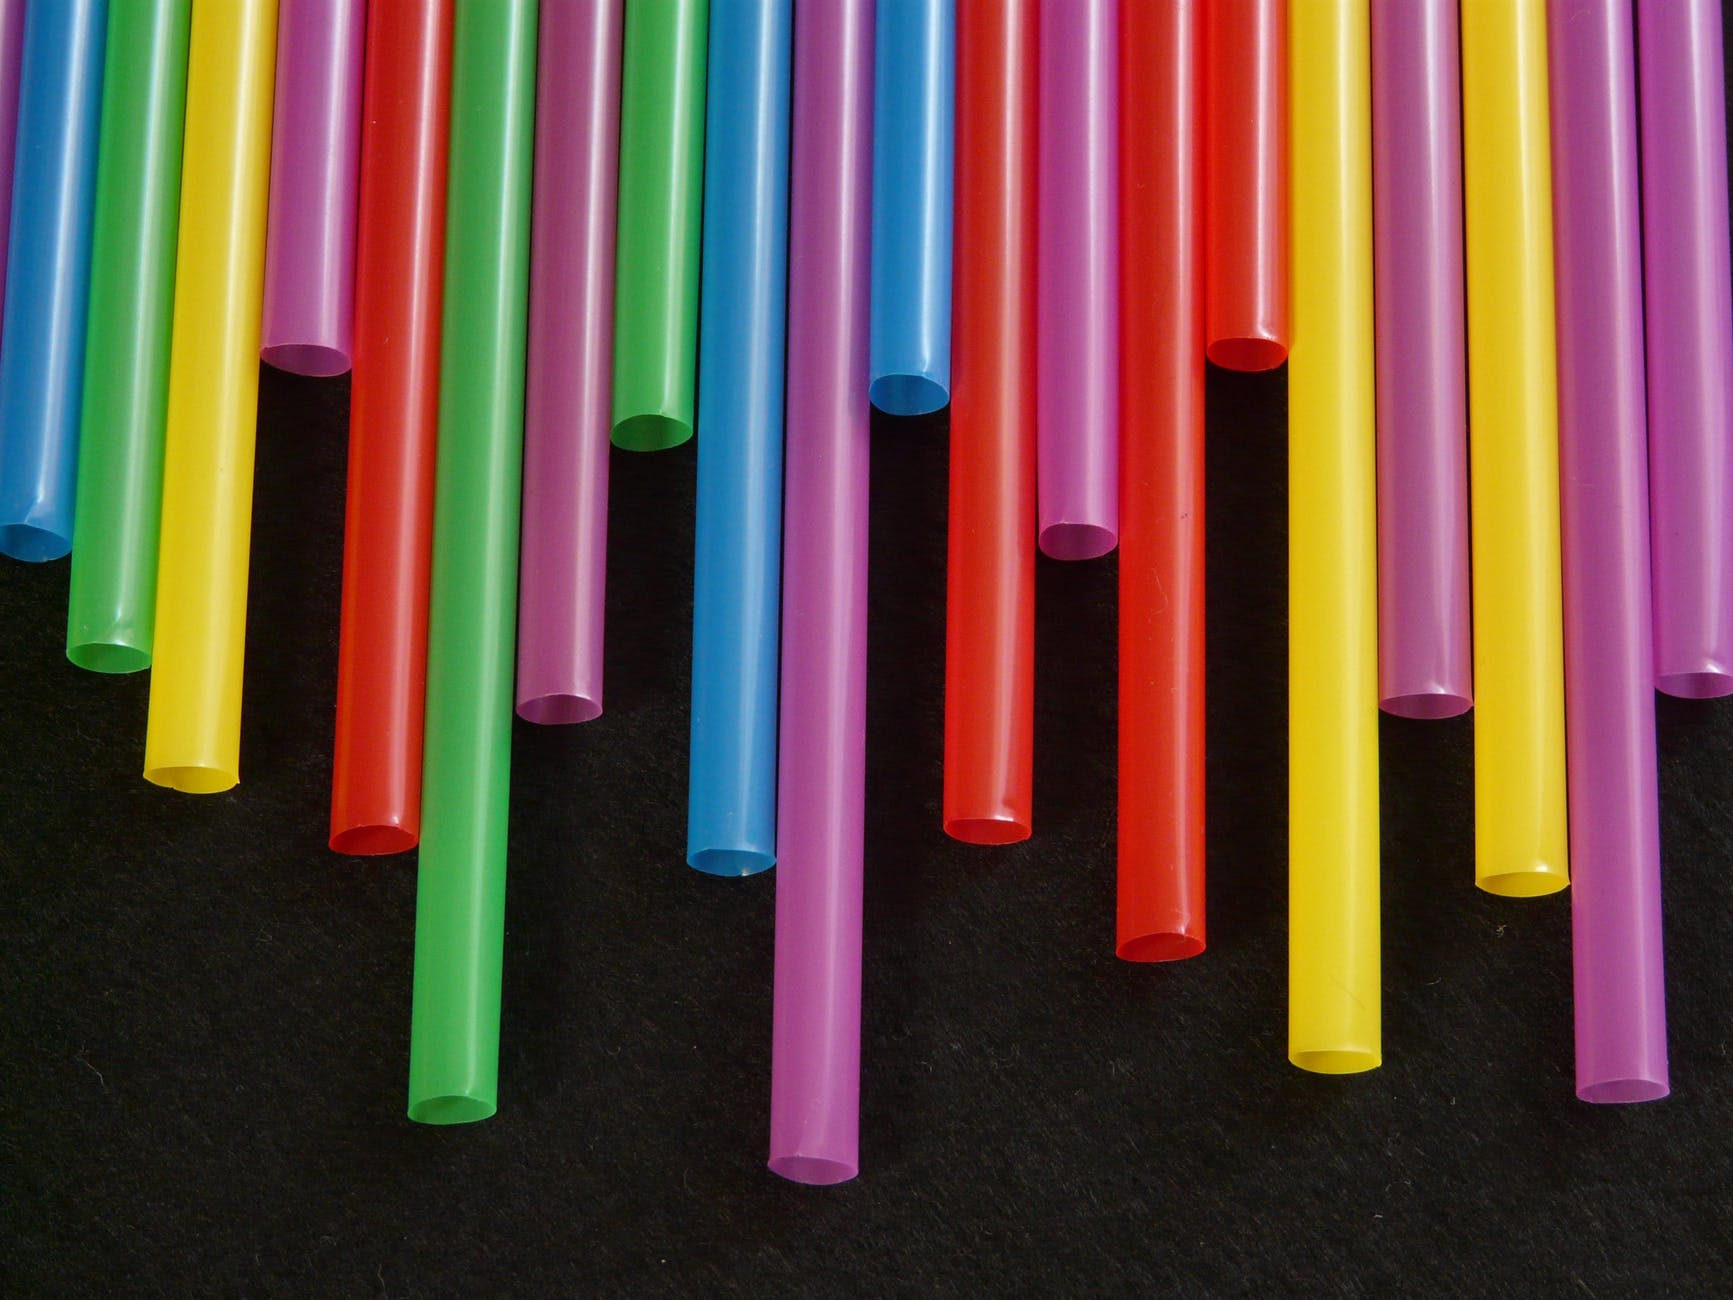 straws-tube-plastic-colorful-65612.jpeg